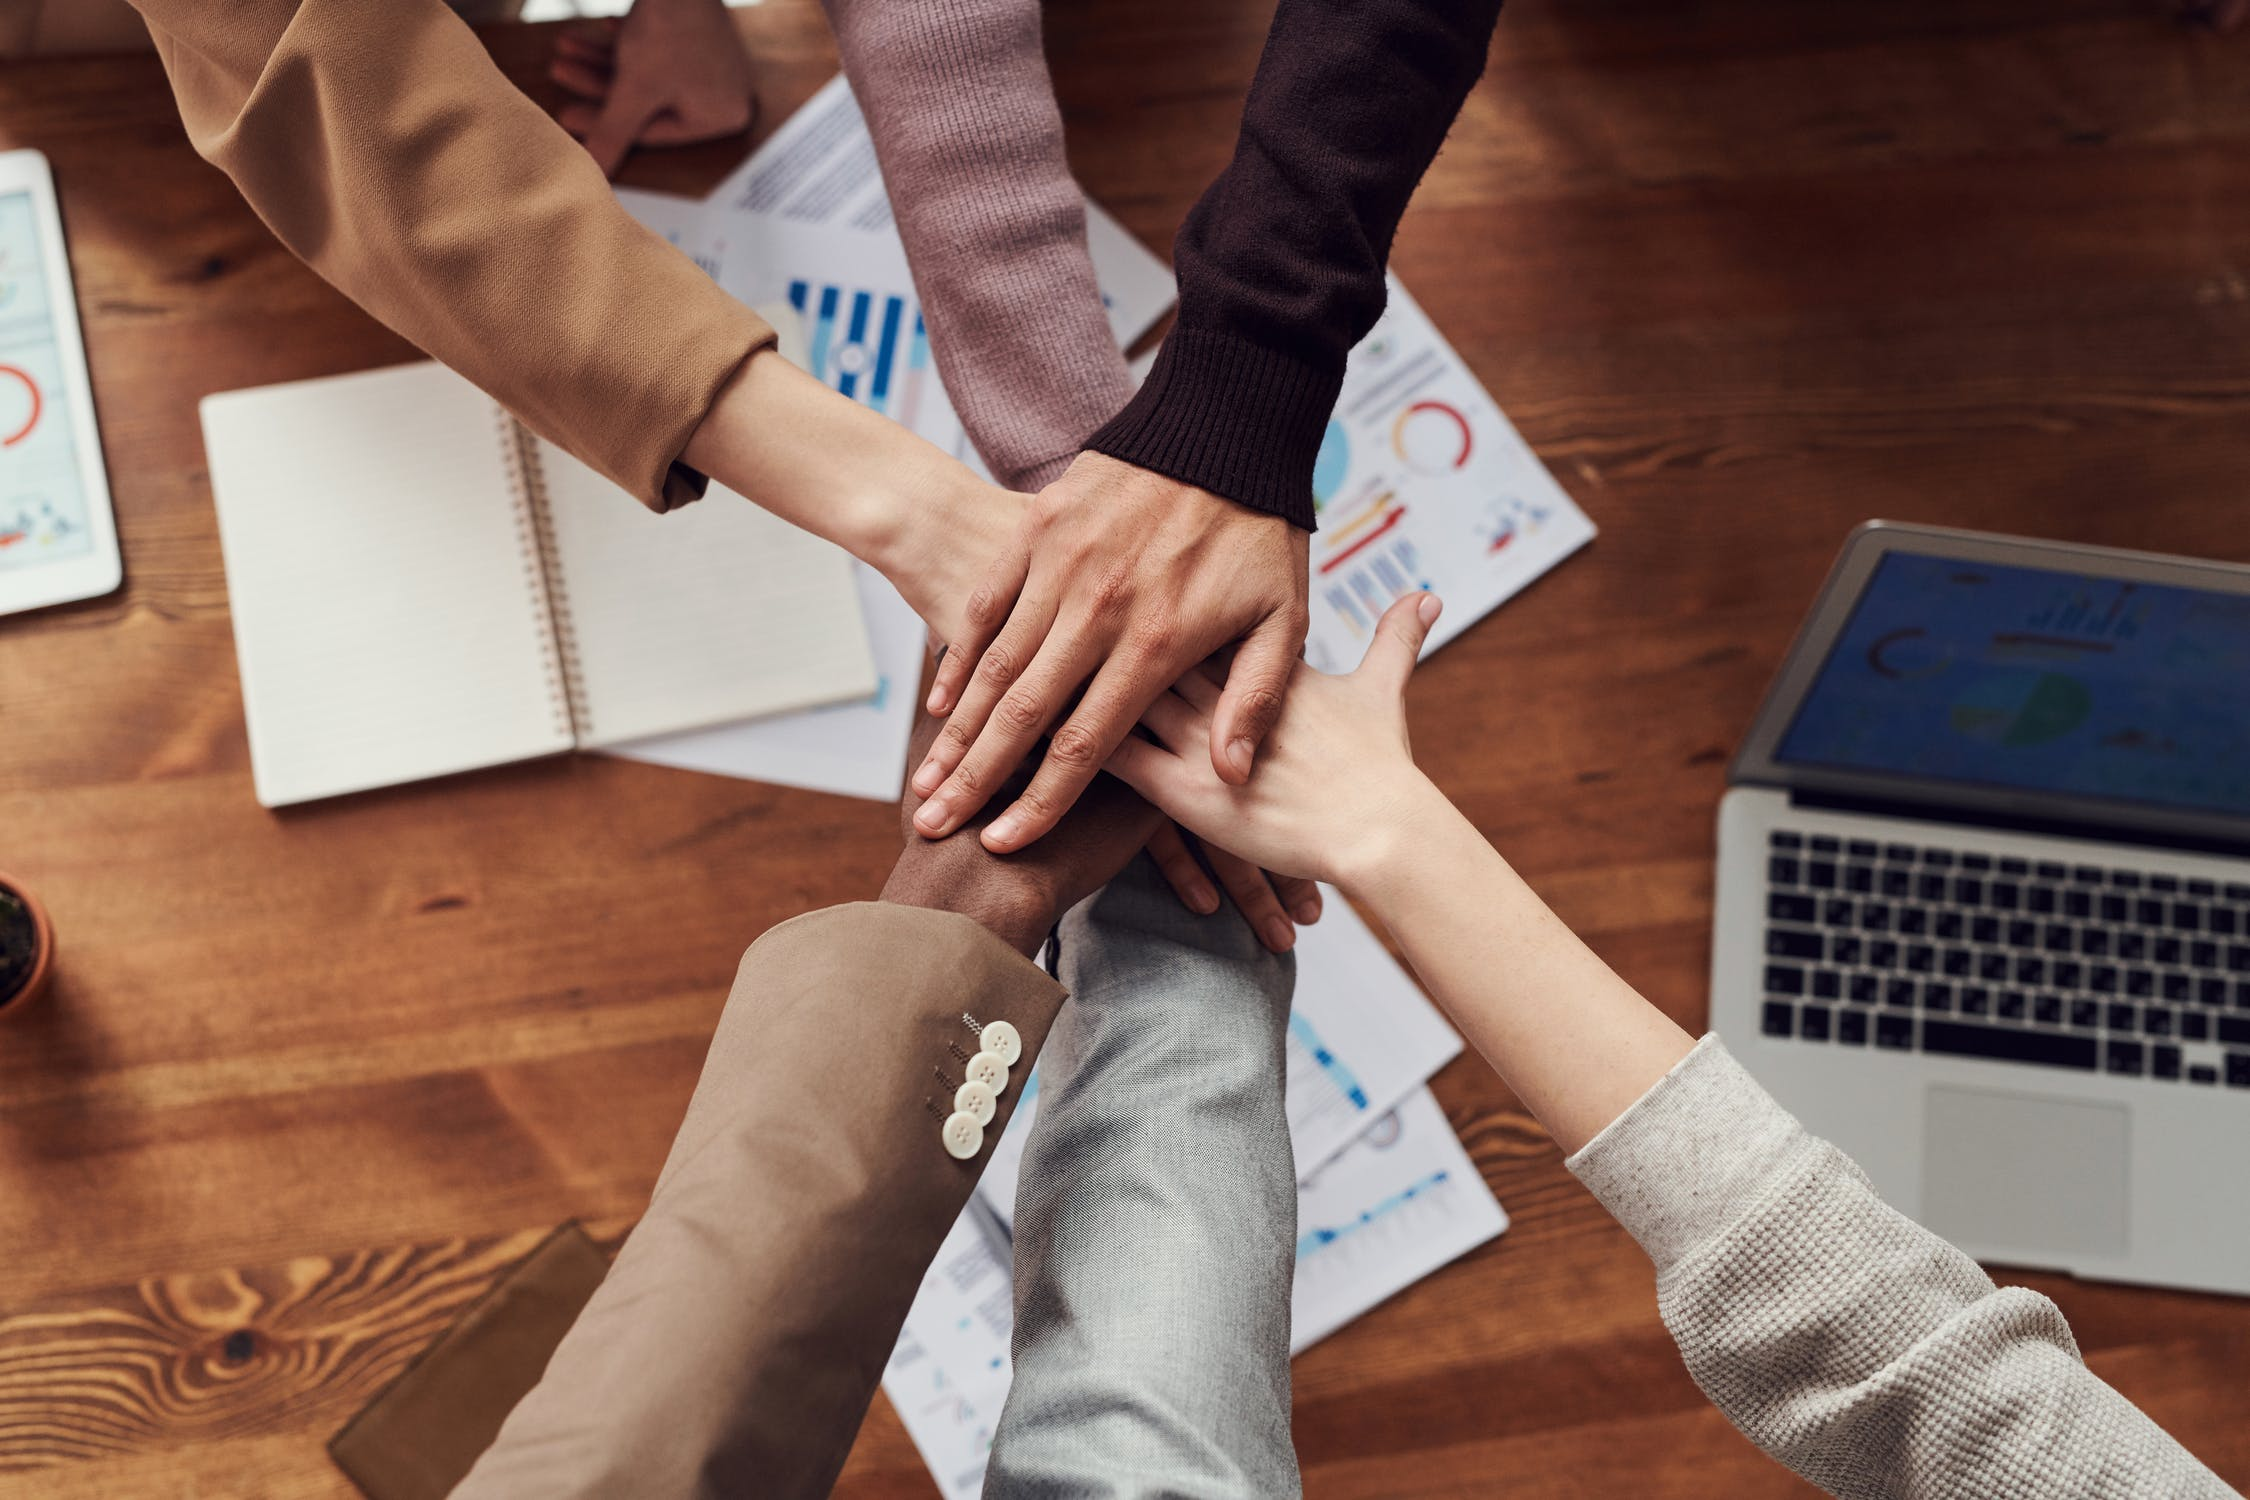 10 Strategies for Building A Strong Culture Among Your Remote Tech Team